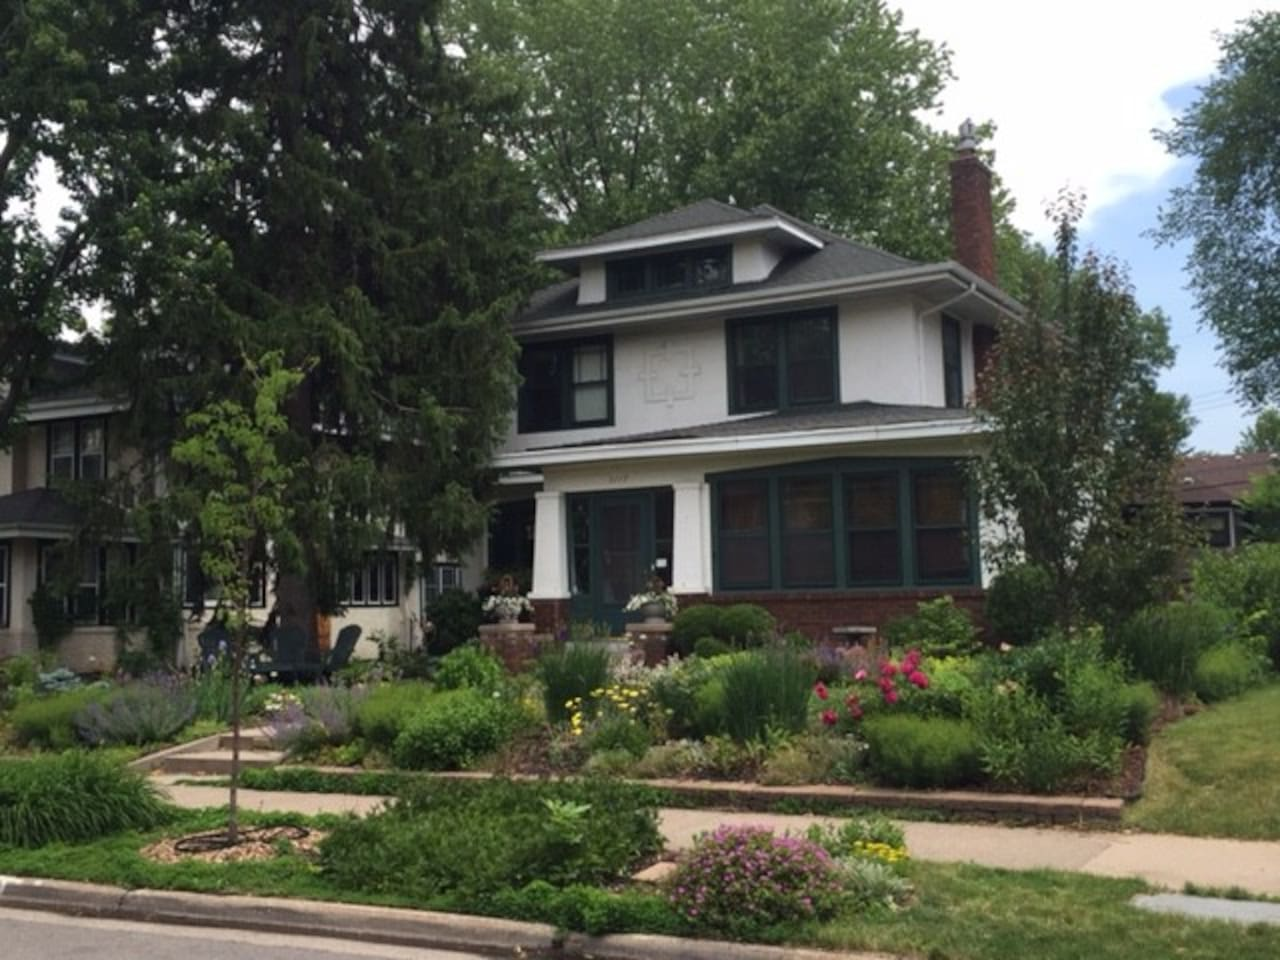 Lovely home and garden in great neighborhood safe, quite and 1/2 block to Minnehaha Creek/parkway.